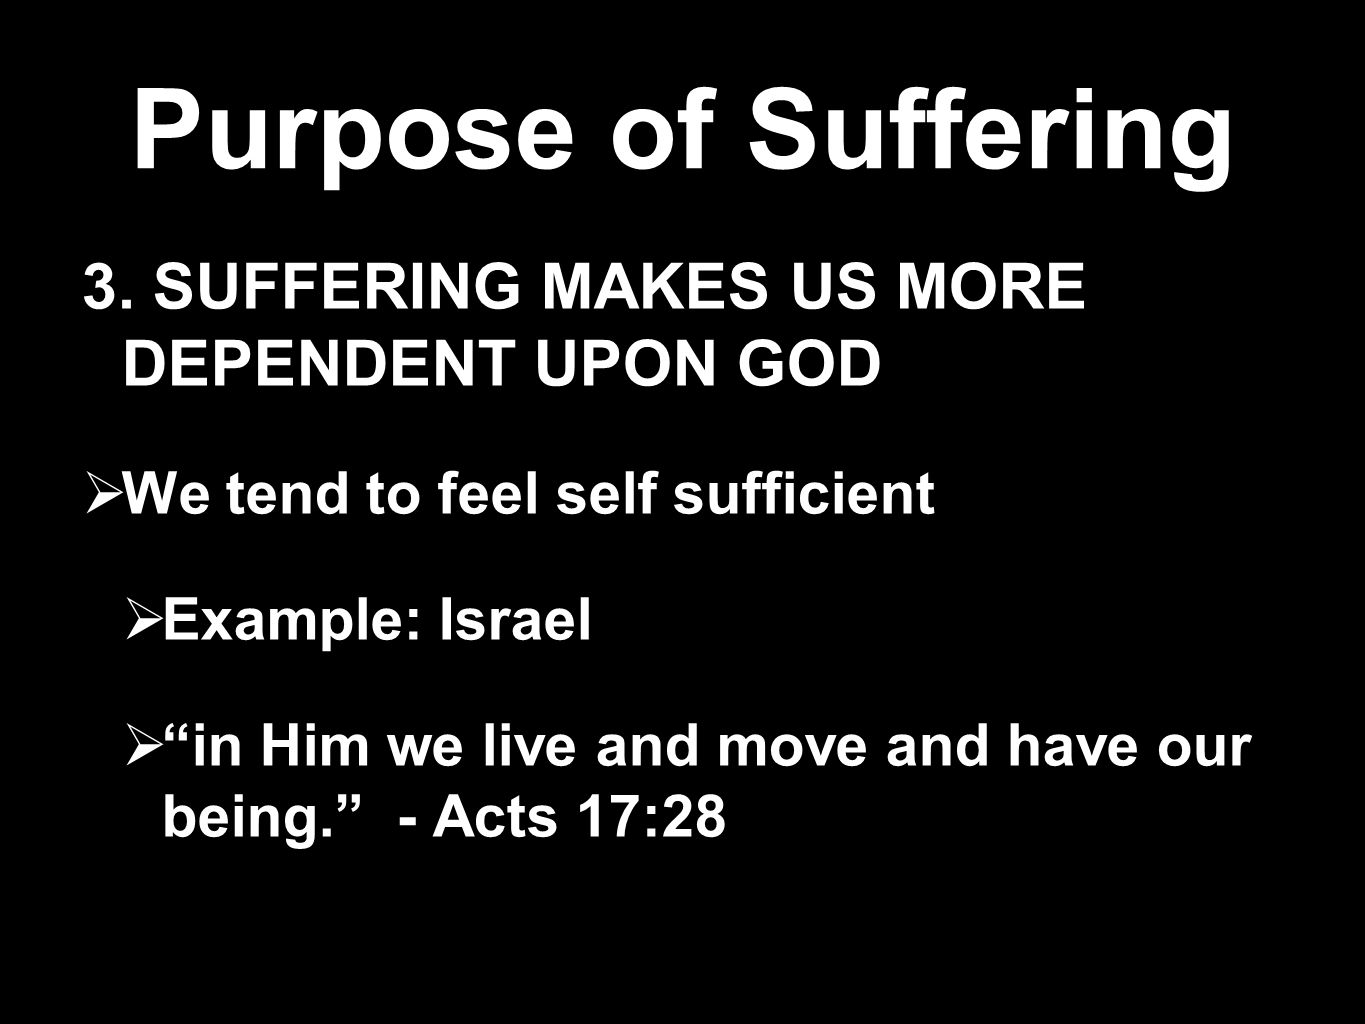 Purpose of Suffering 3. SUFFERING MAKES US MORE DEPENDENT UPON GOD